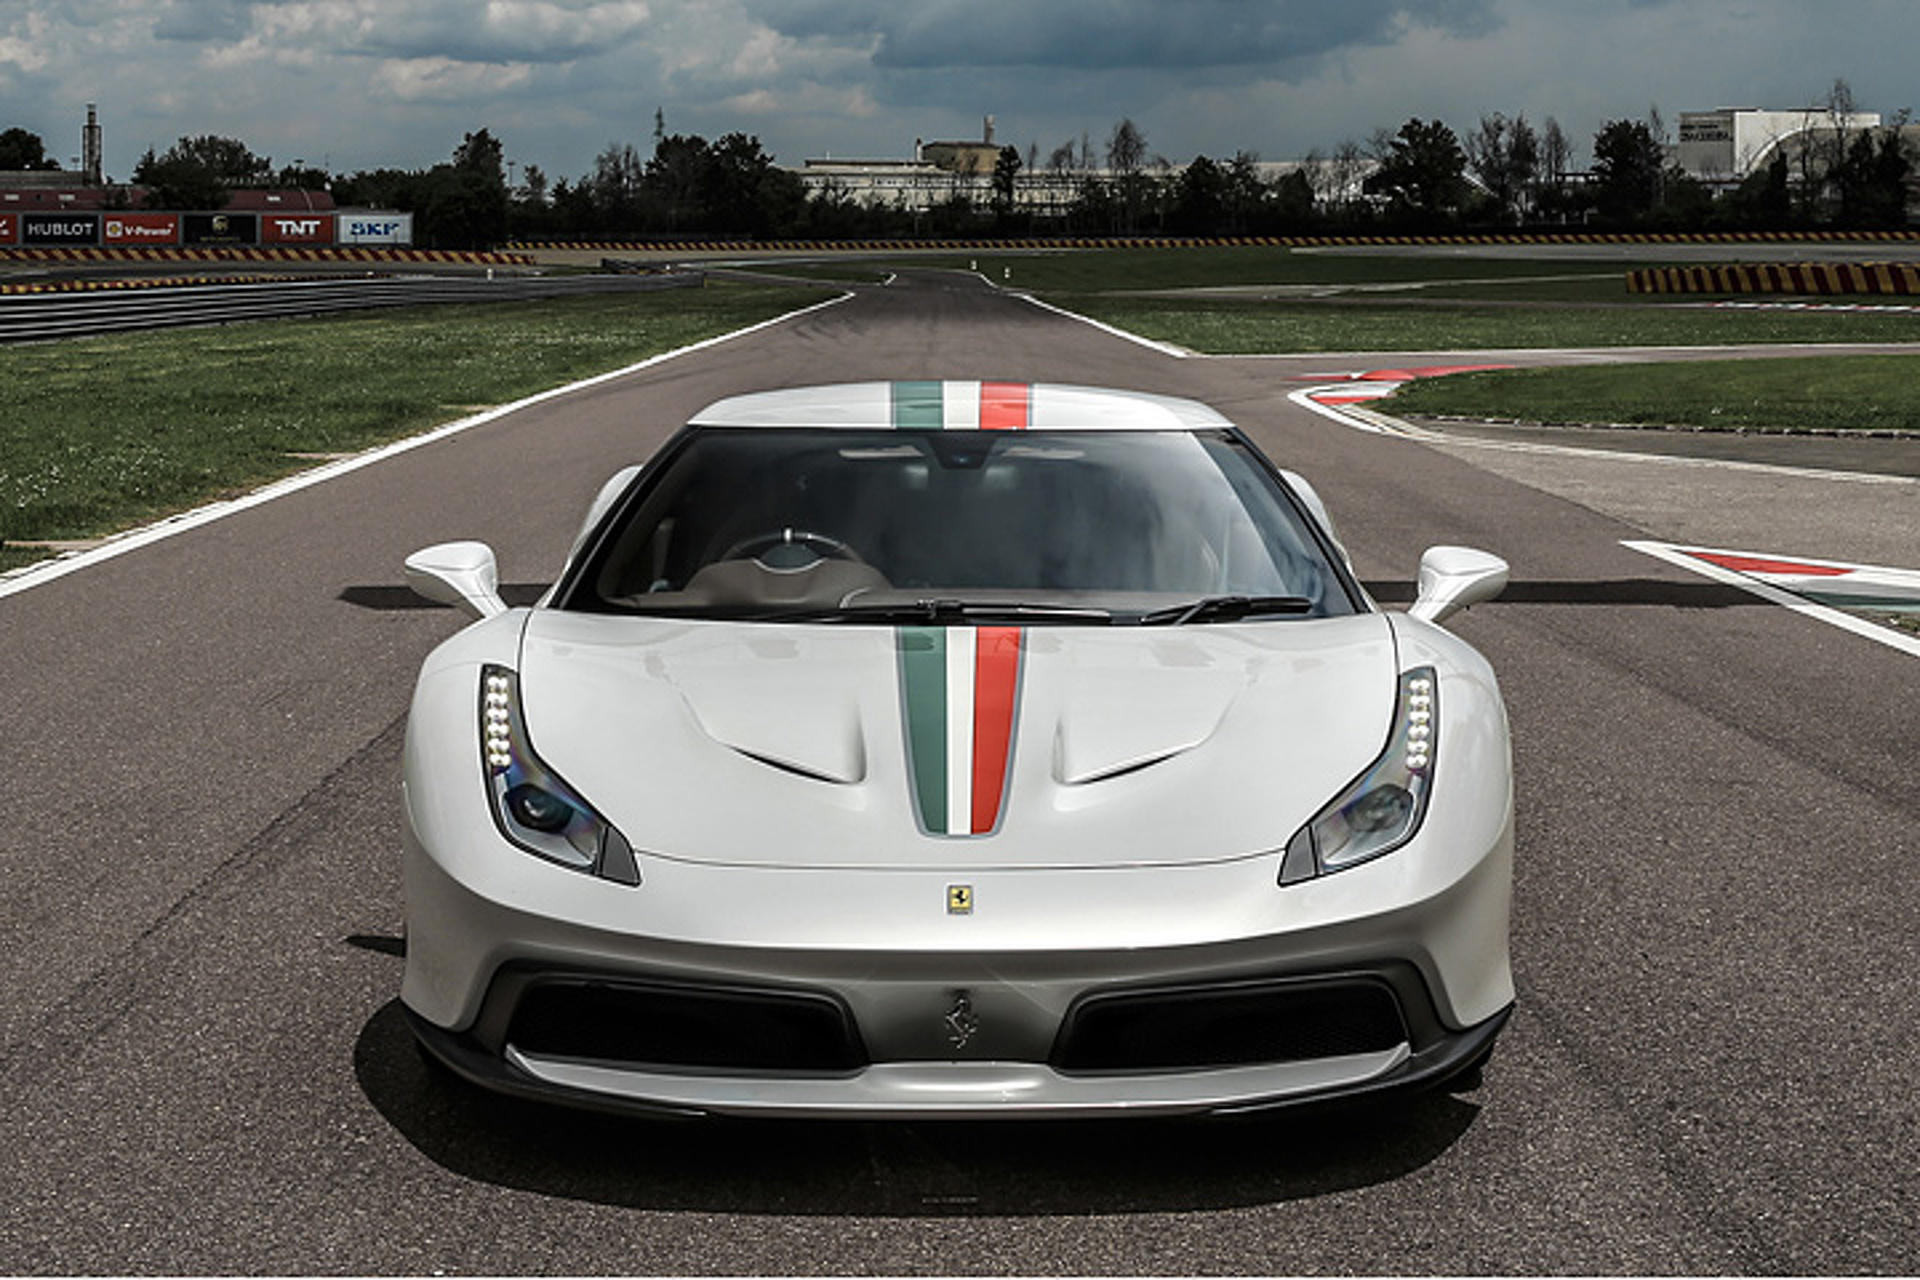 This is the Only Ferrari 458 MM in the World